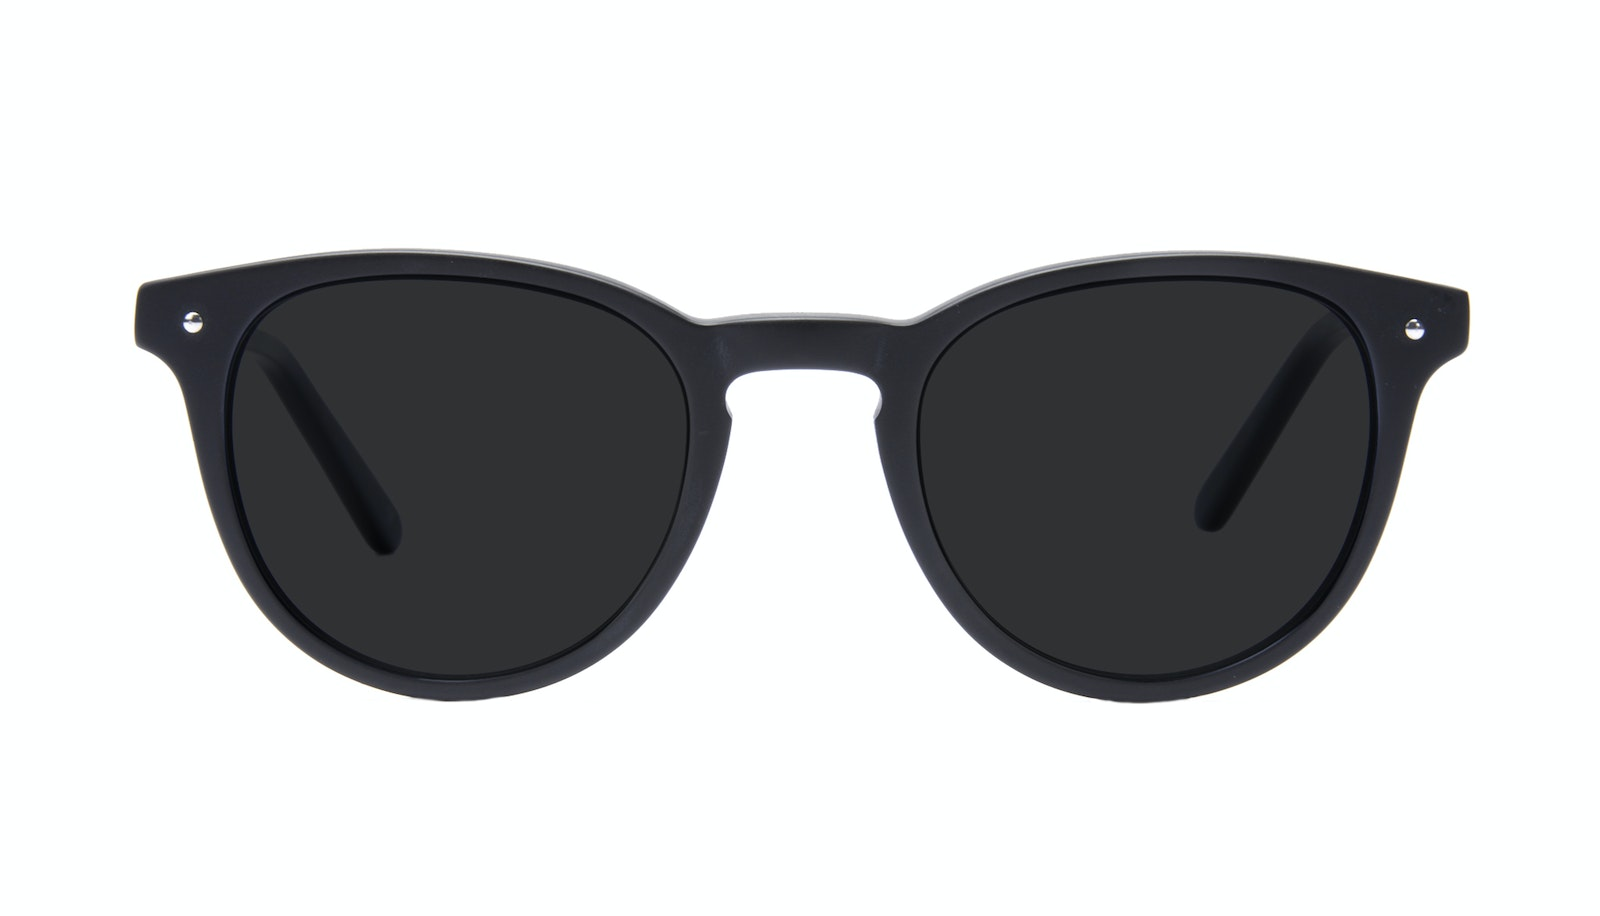 Affordable Fashion Glasses Round Sunglasses Men Cult Matte Black